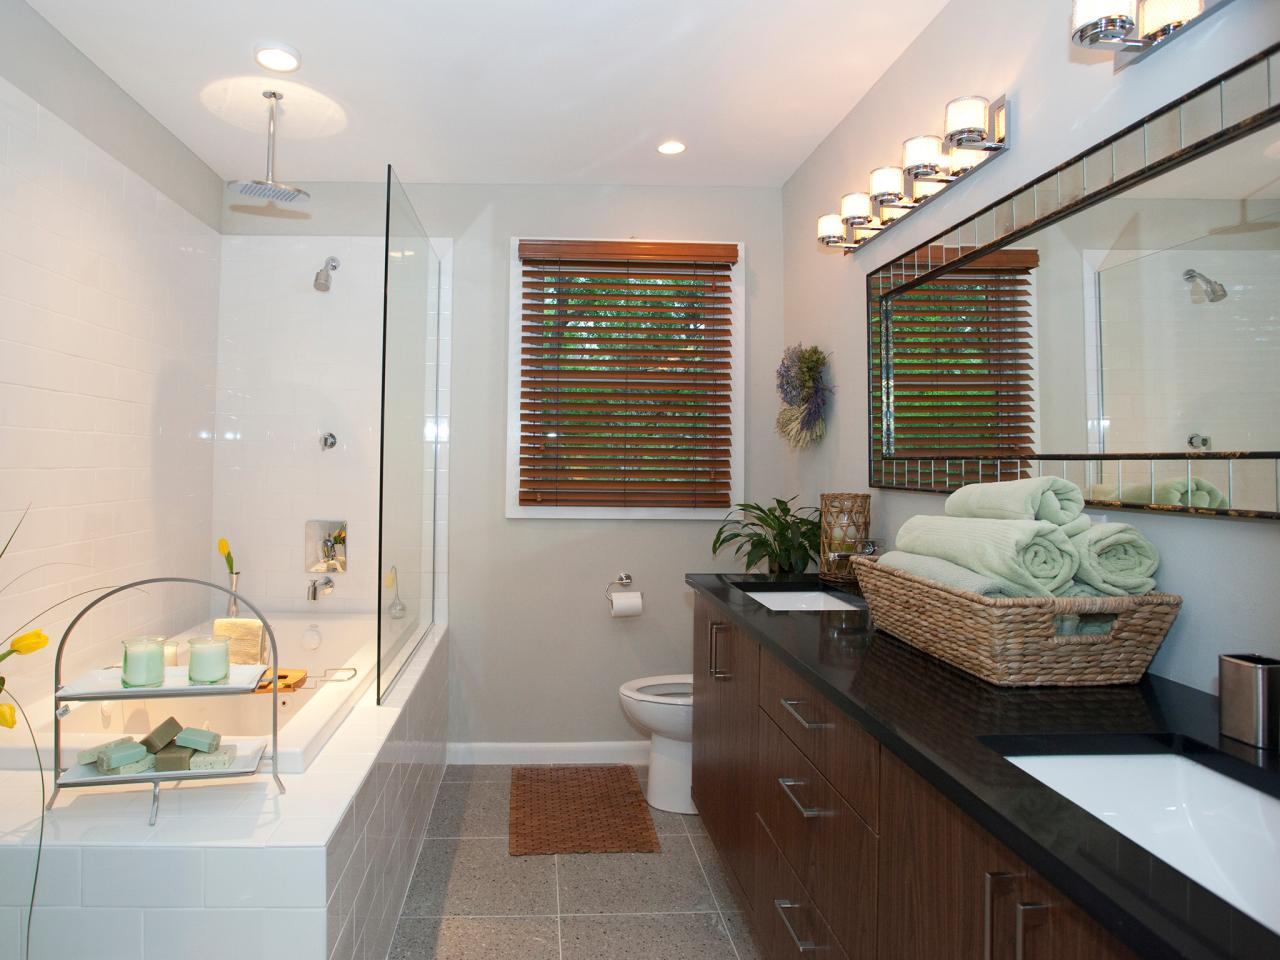 Modern bathroom design ideas pictures tips from hgtv for House bathroom design